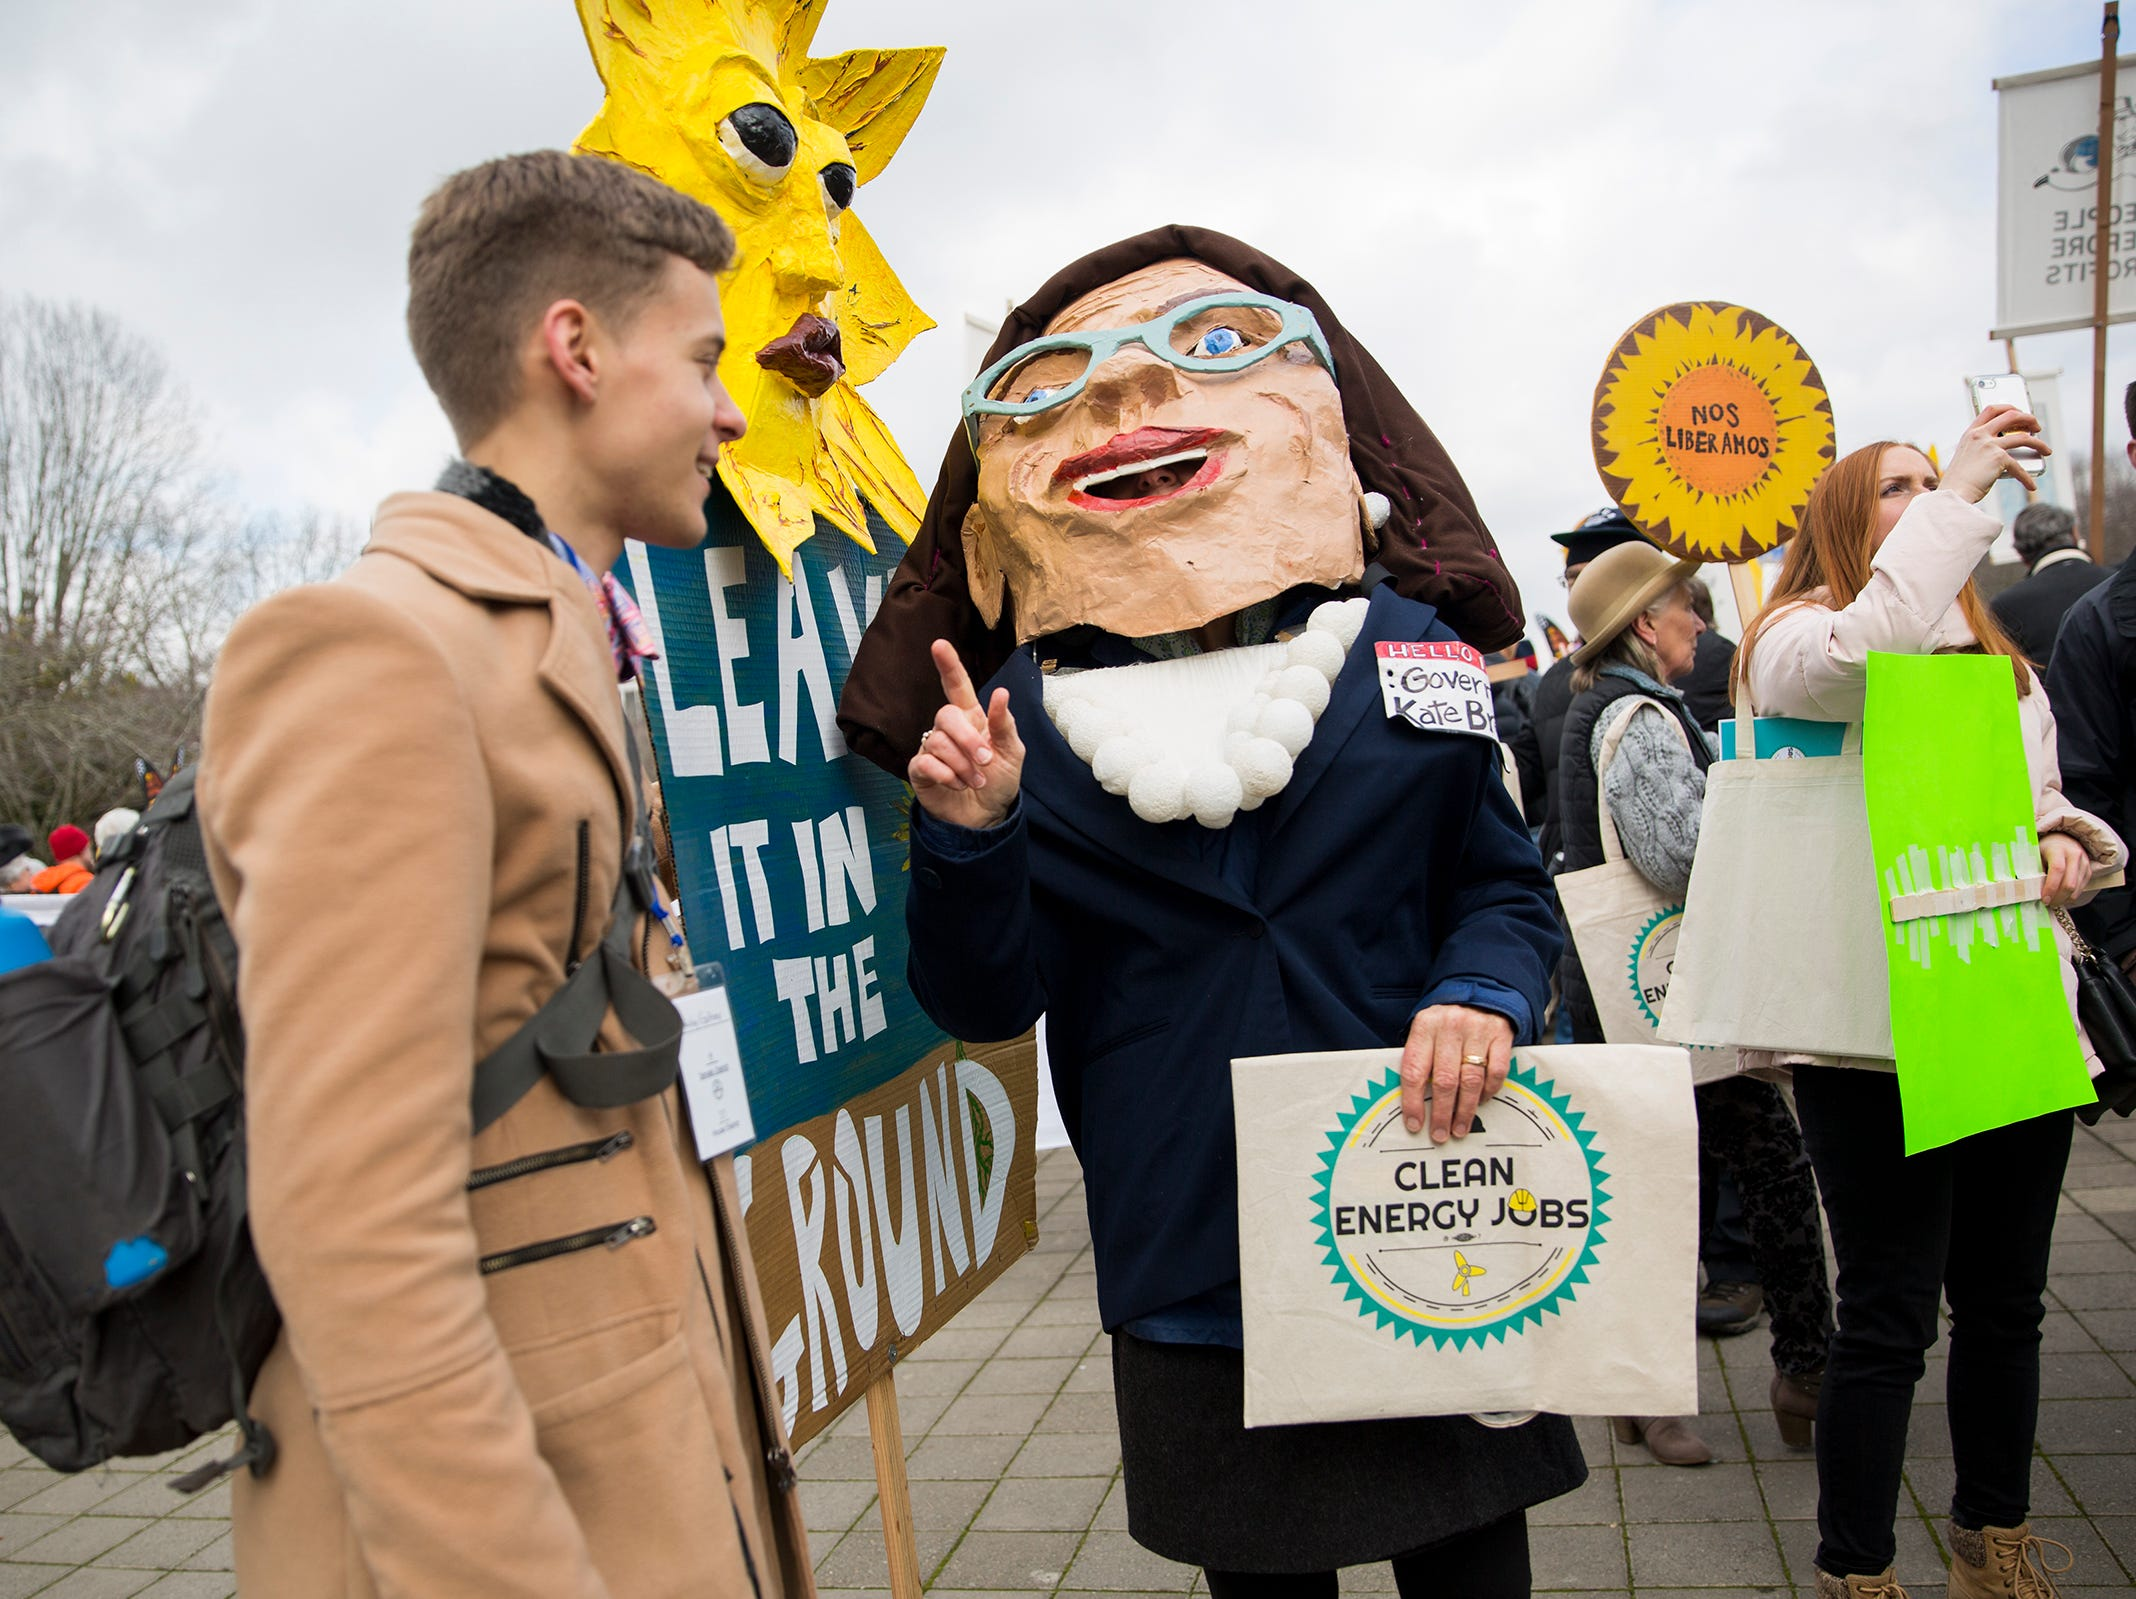 Patricia Hine of Eugene dresses as Gov. Kate Brown at a  rally in support of clean energy jobs at the Oregon State Capitol in Salem on Wednesday, Feb. 6, 2019.